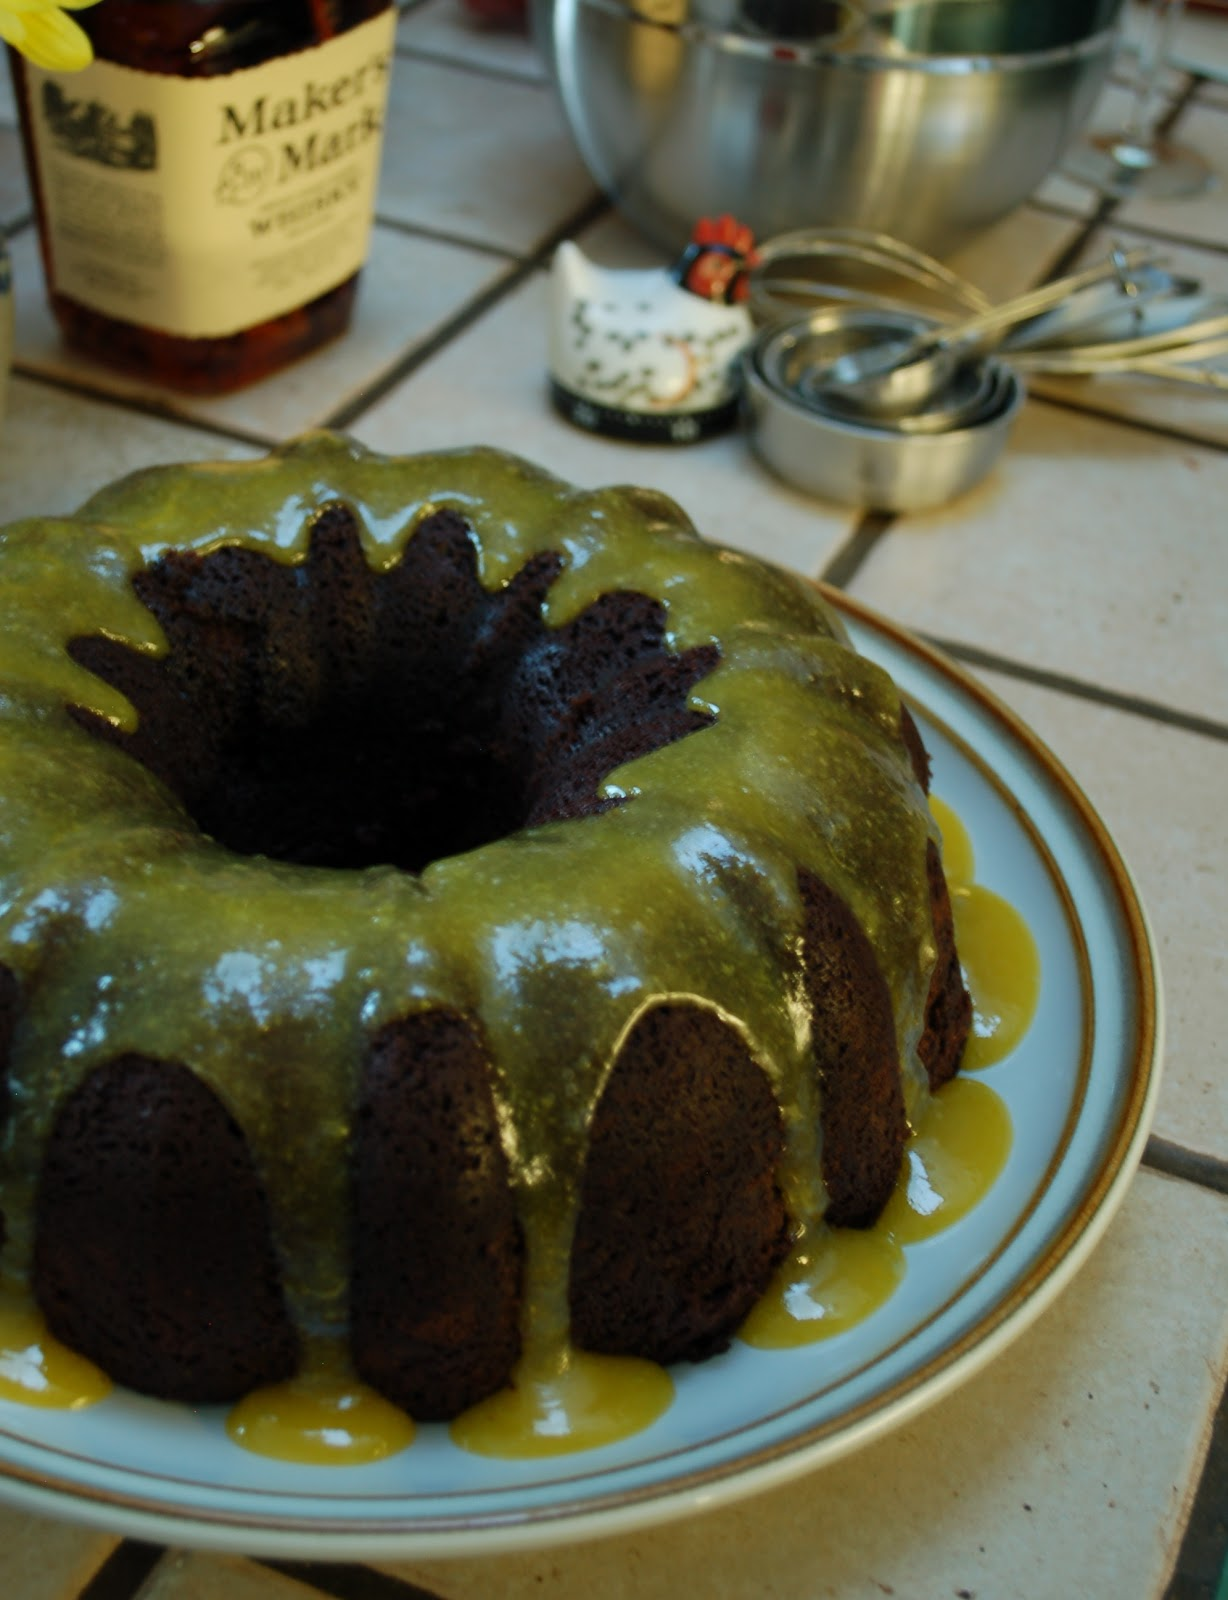 The Spice Garden: Bourbon-Chocolate Bundt Cake with Hard Sauce Glaze